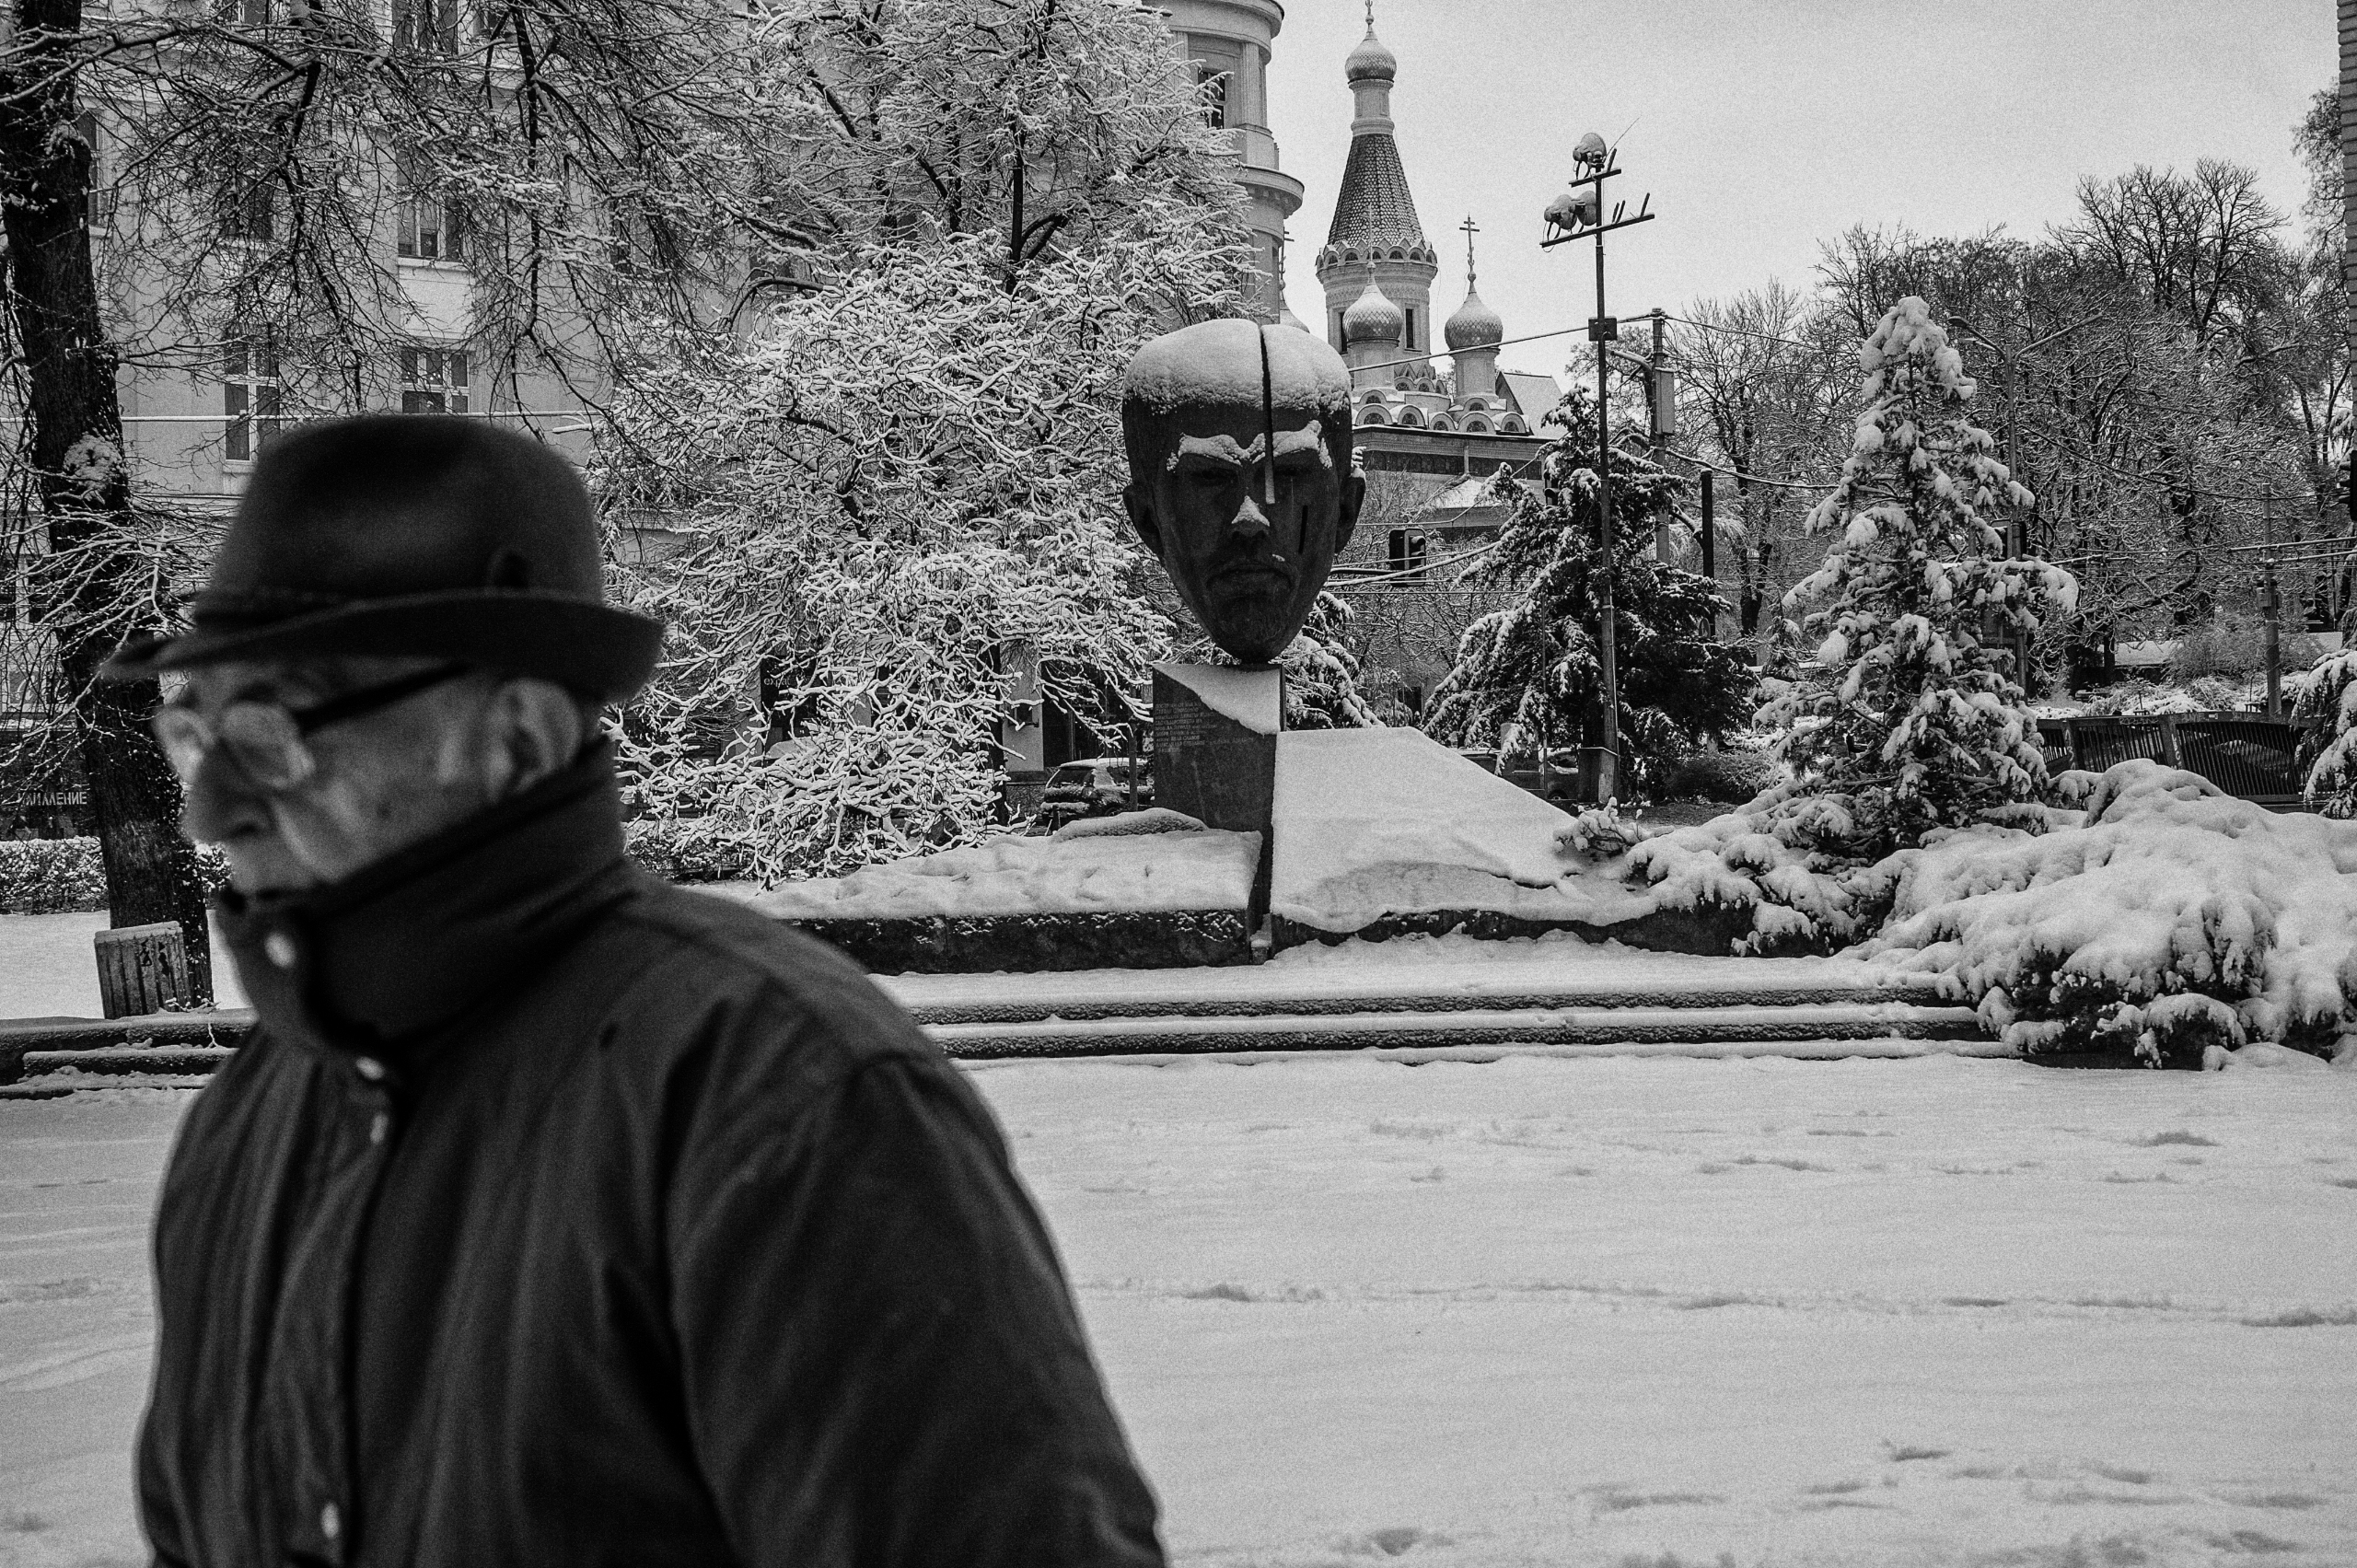 Street Photography cold winter  - wreford | ello